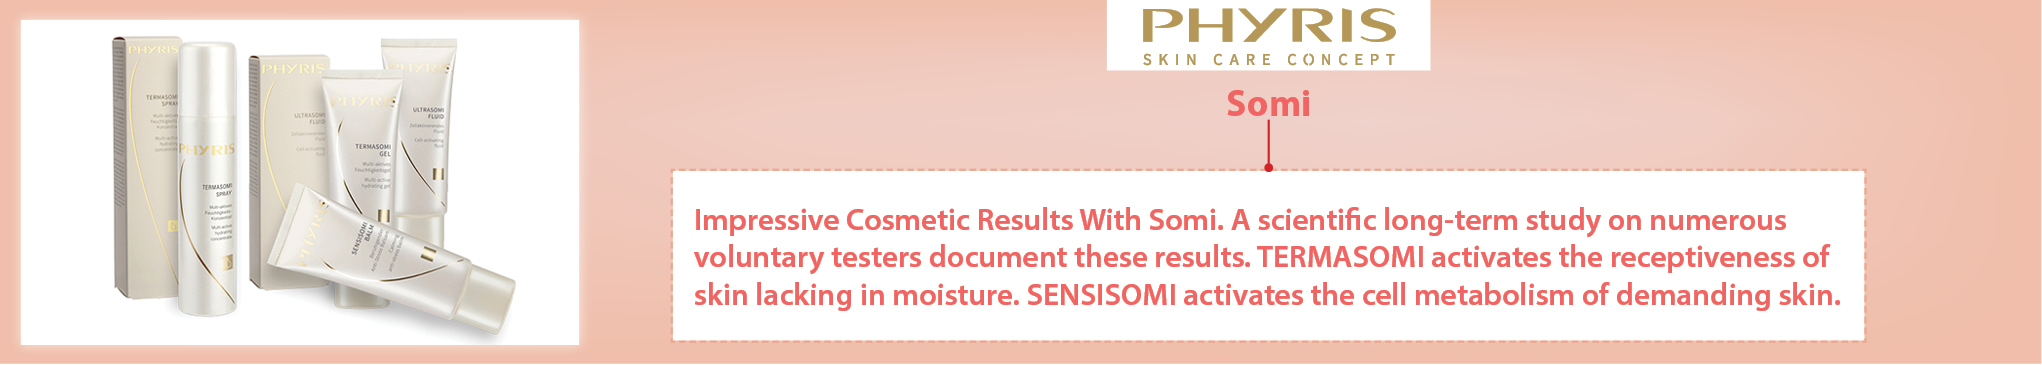 phy-somi-category-banner-980x175.jpg